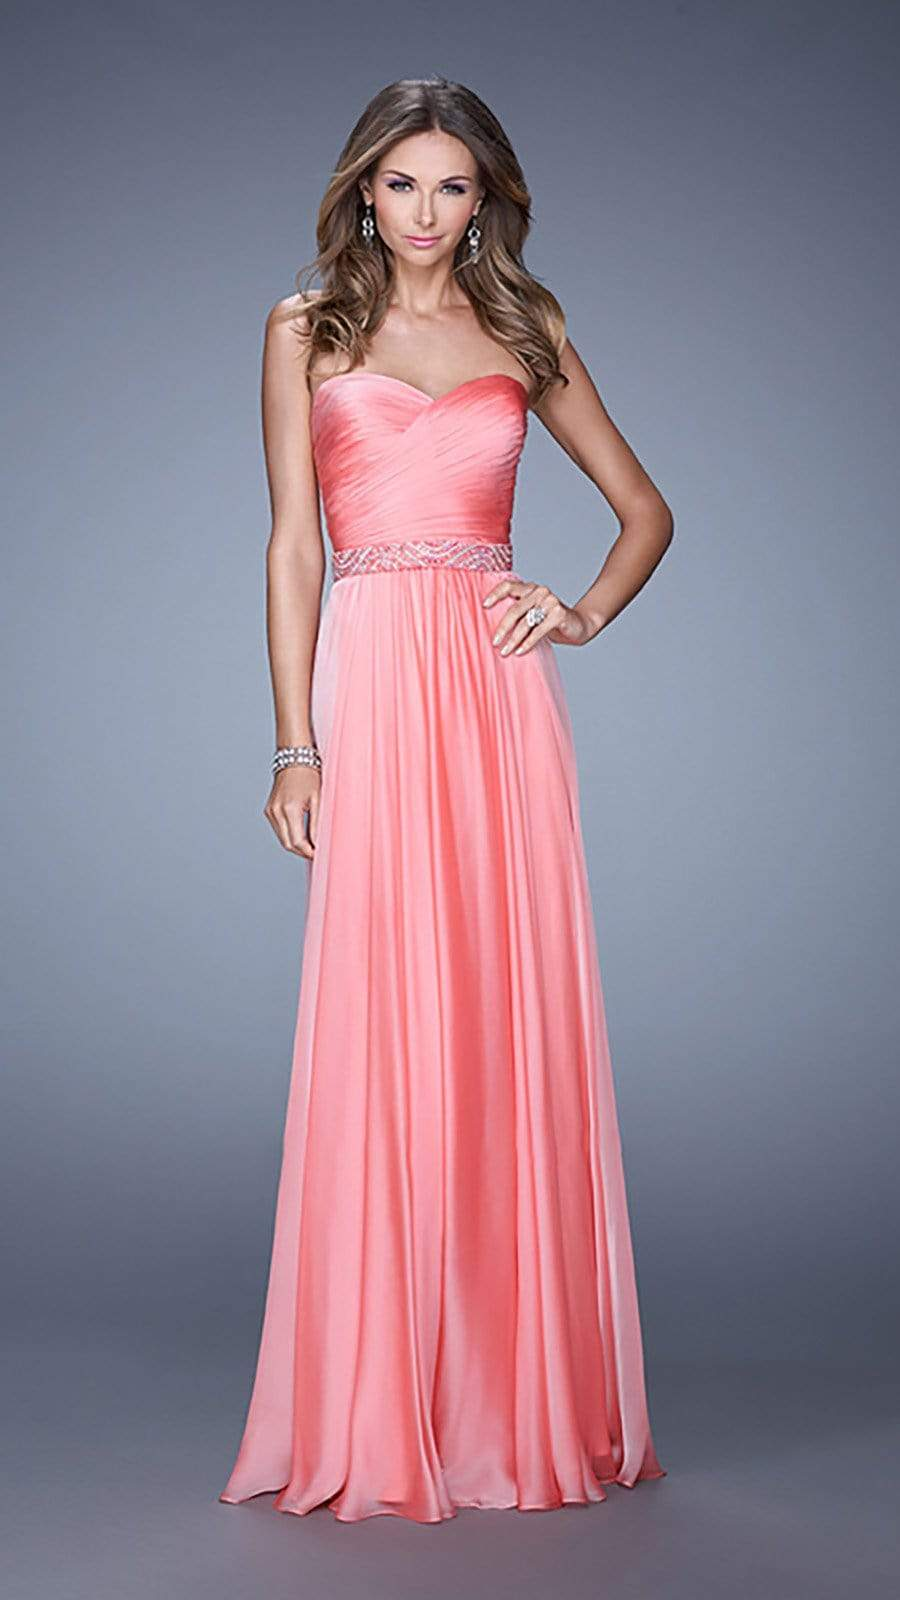 La Femme - 20527 Wrap Ruched Chiffon Gown Special Occasion Dress 00 / Coral